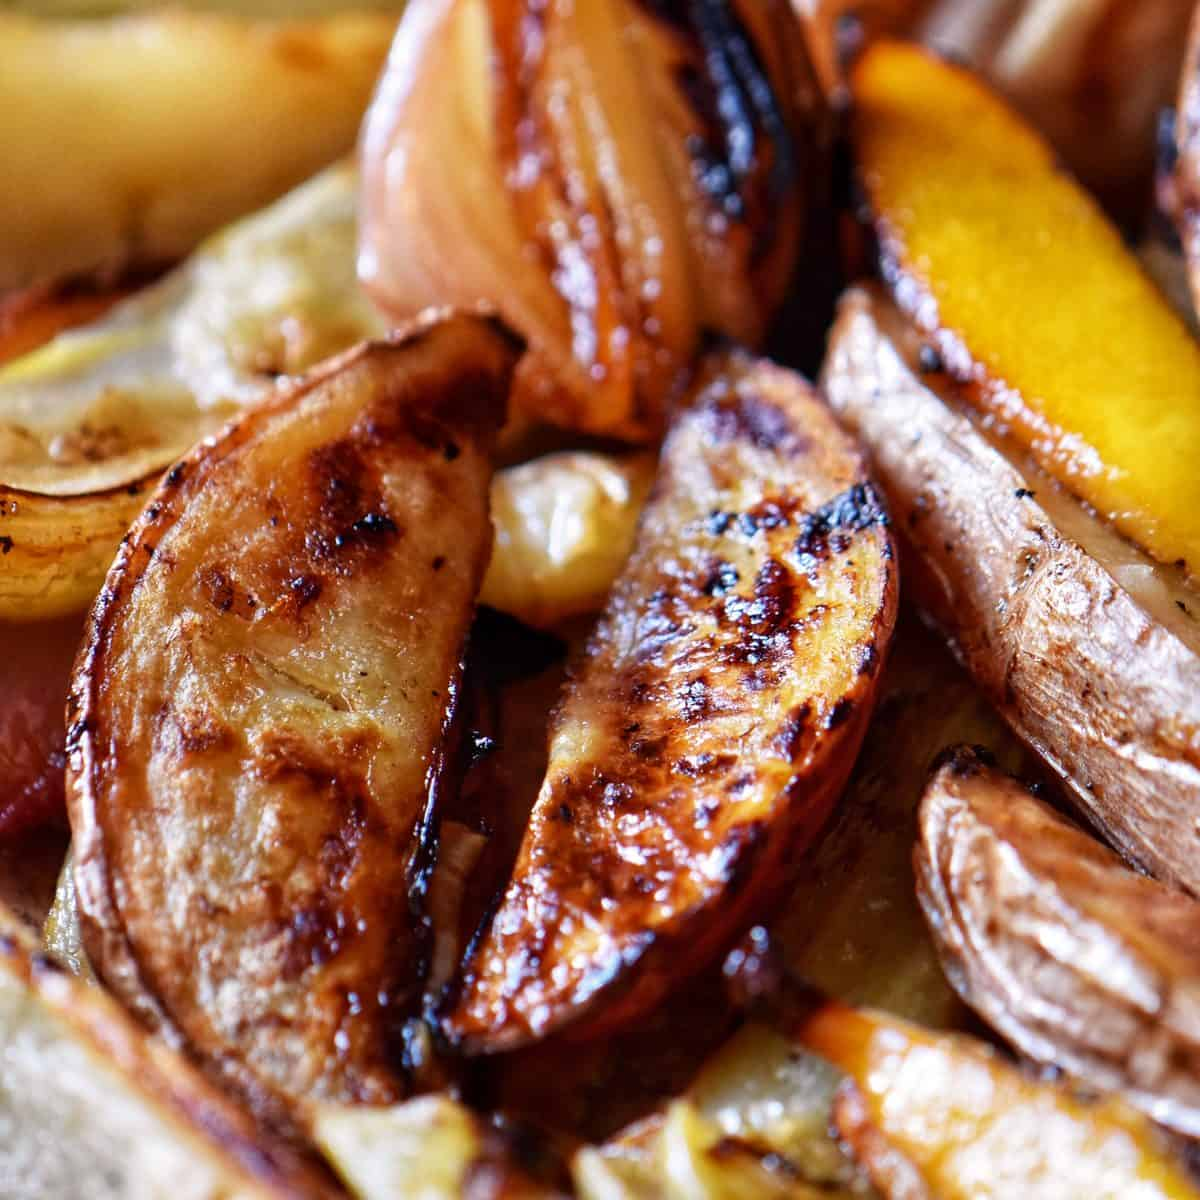 Roasted potatoes and fennel.